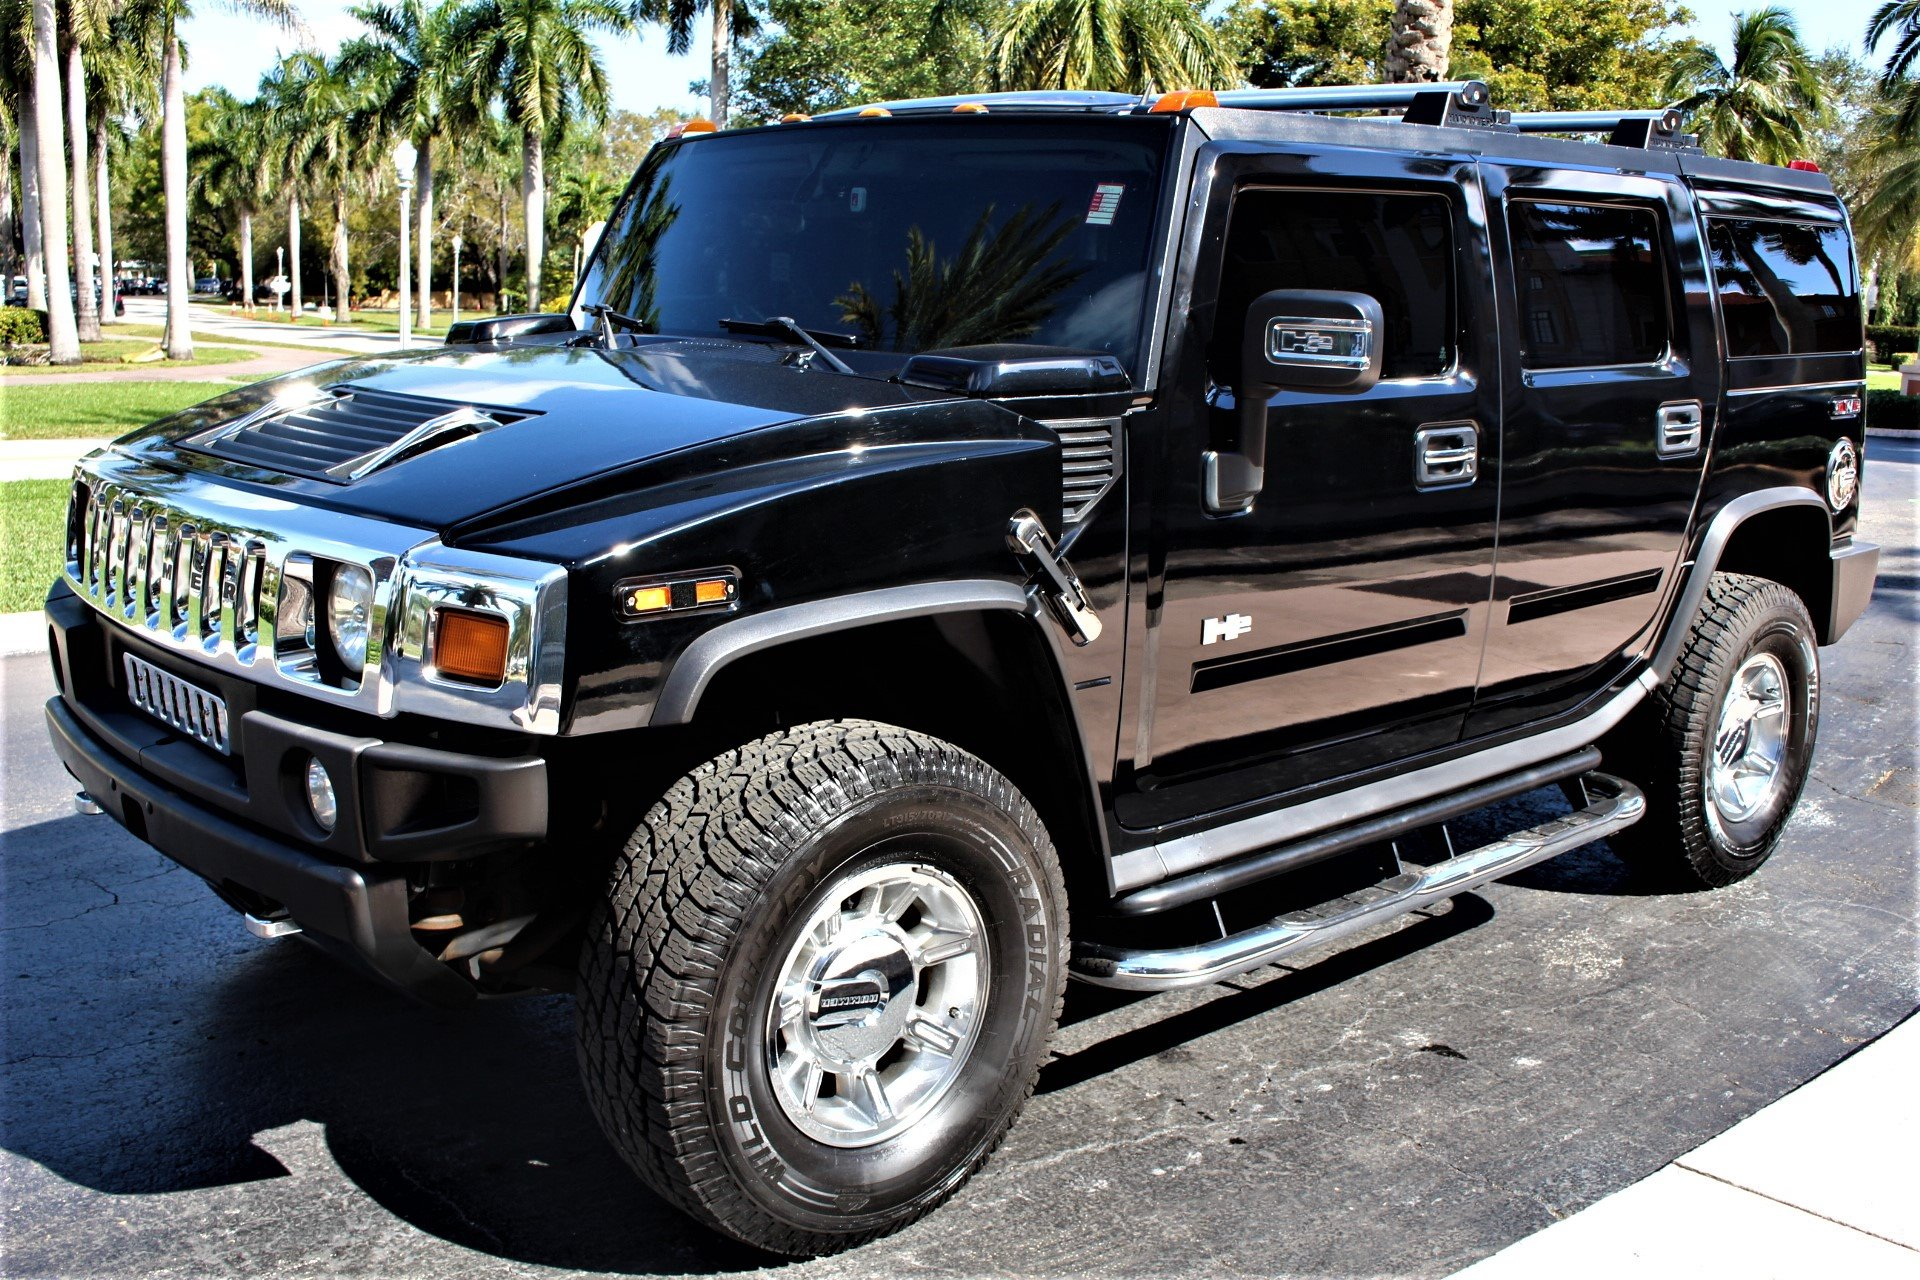 Used 2007 HUMMER H2 for sale Sold at The Gables Sports Cars in Miami FL 33146 4